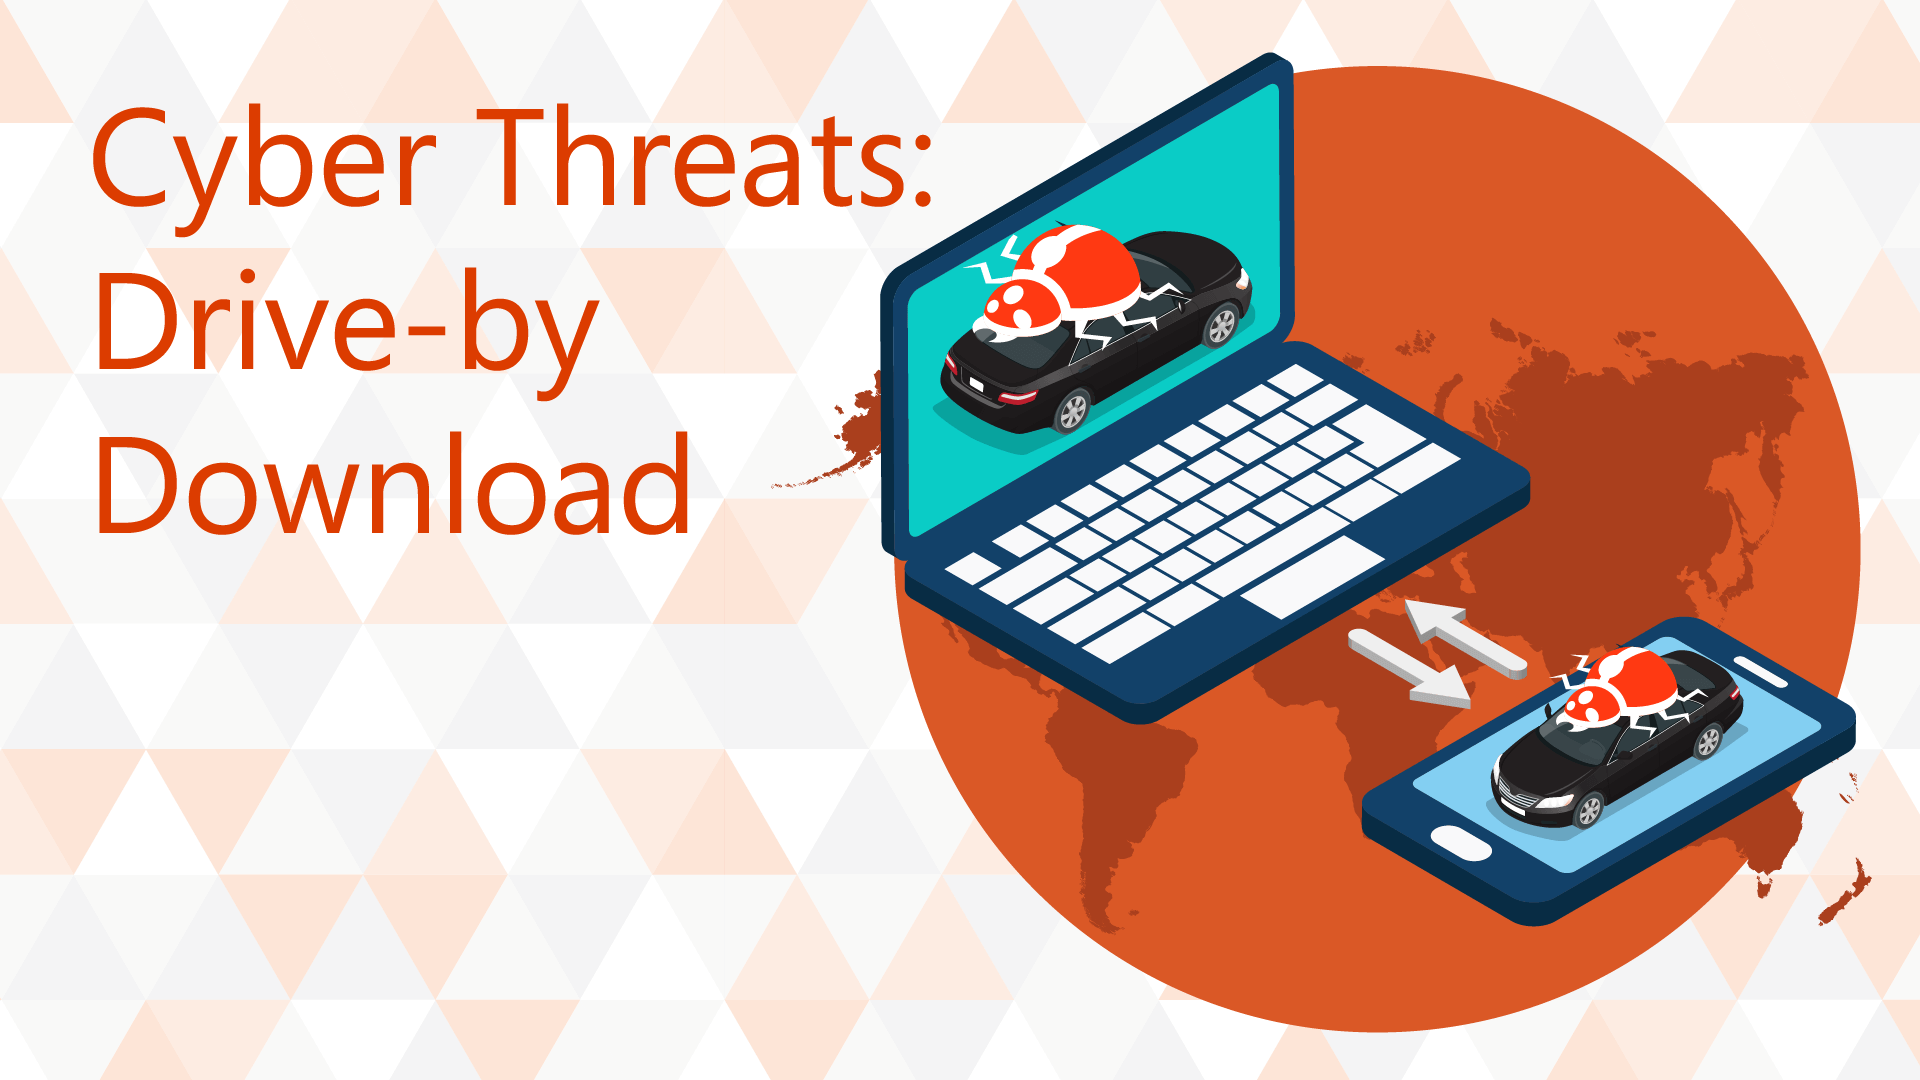 http://blog.social27.com/cybersecuritythinktank/wp-content/uploads/sites/6/2016/07/Cyber-Threats_Drive-by-Download-01.png